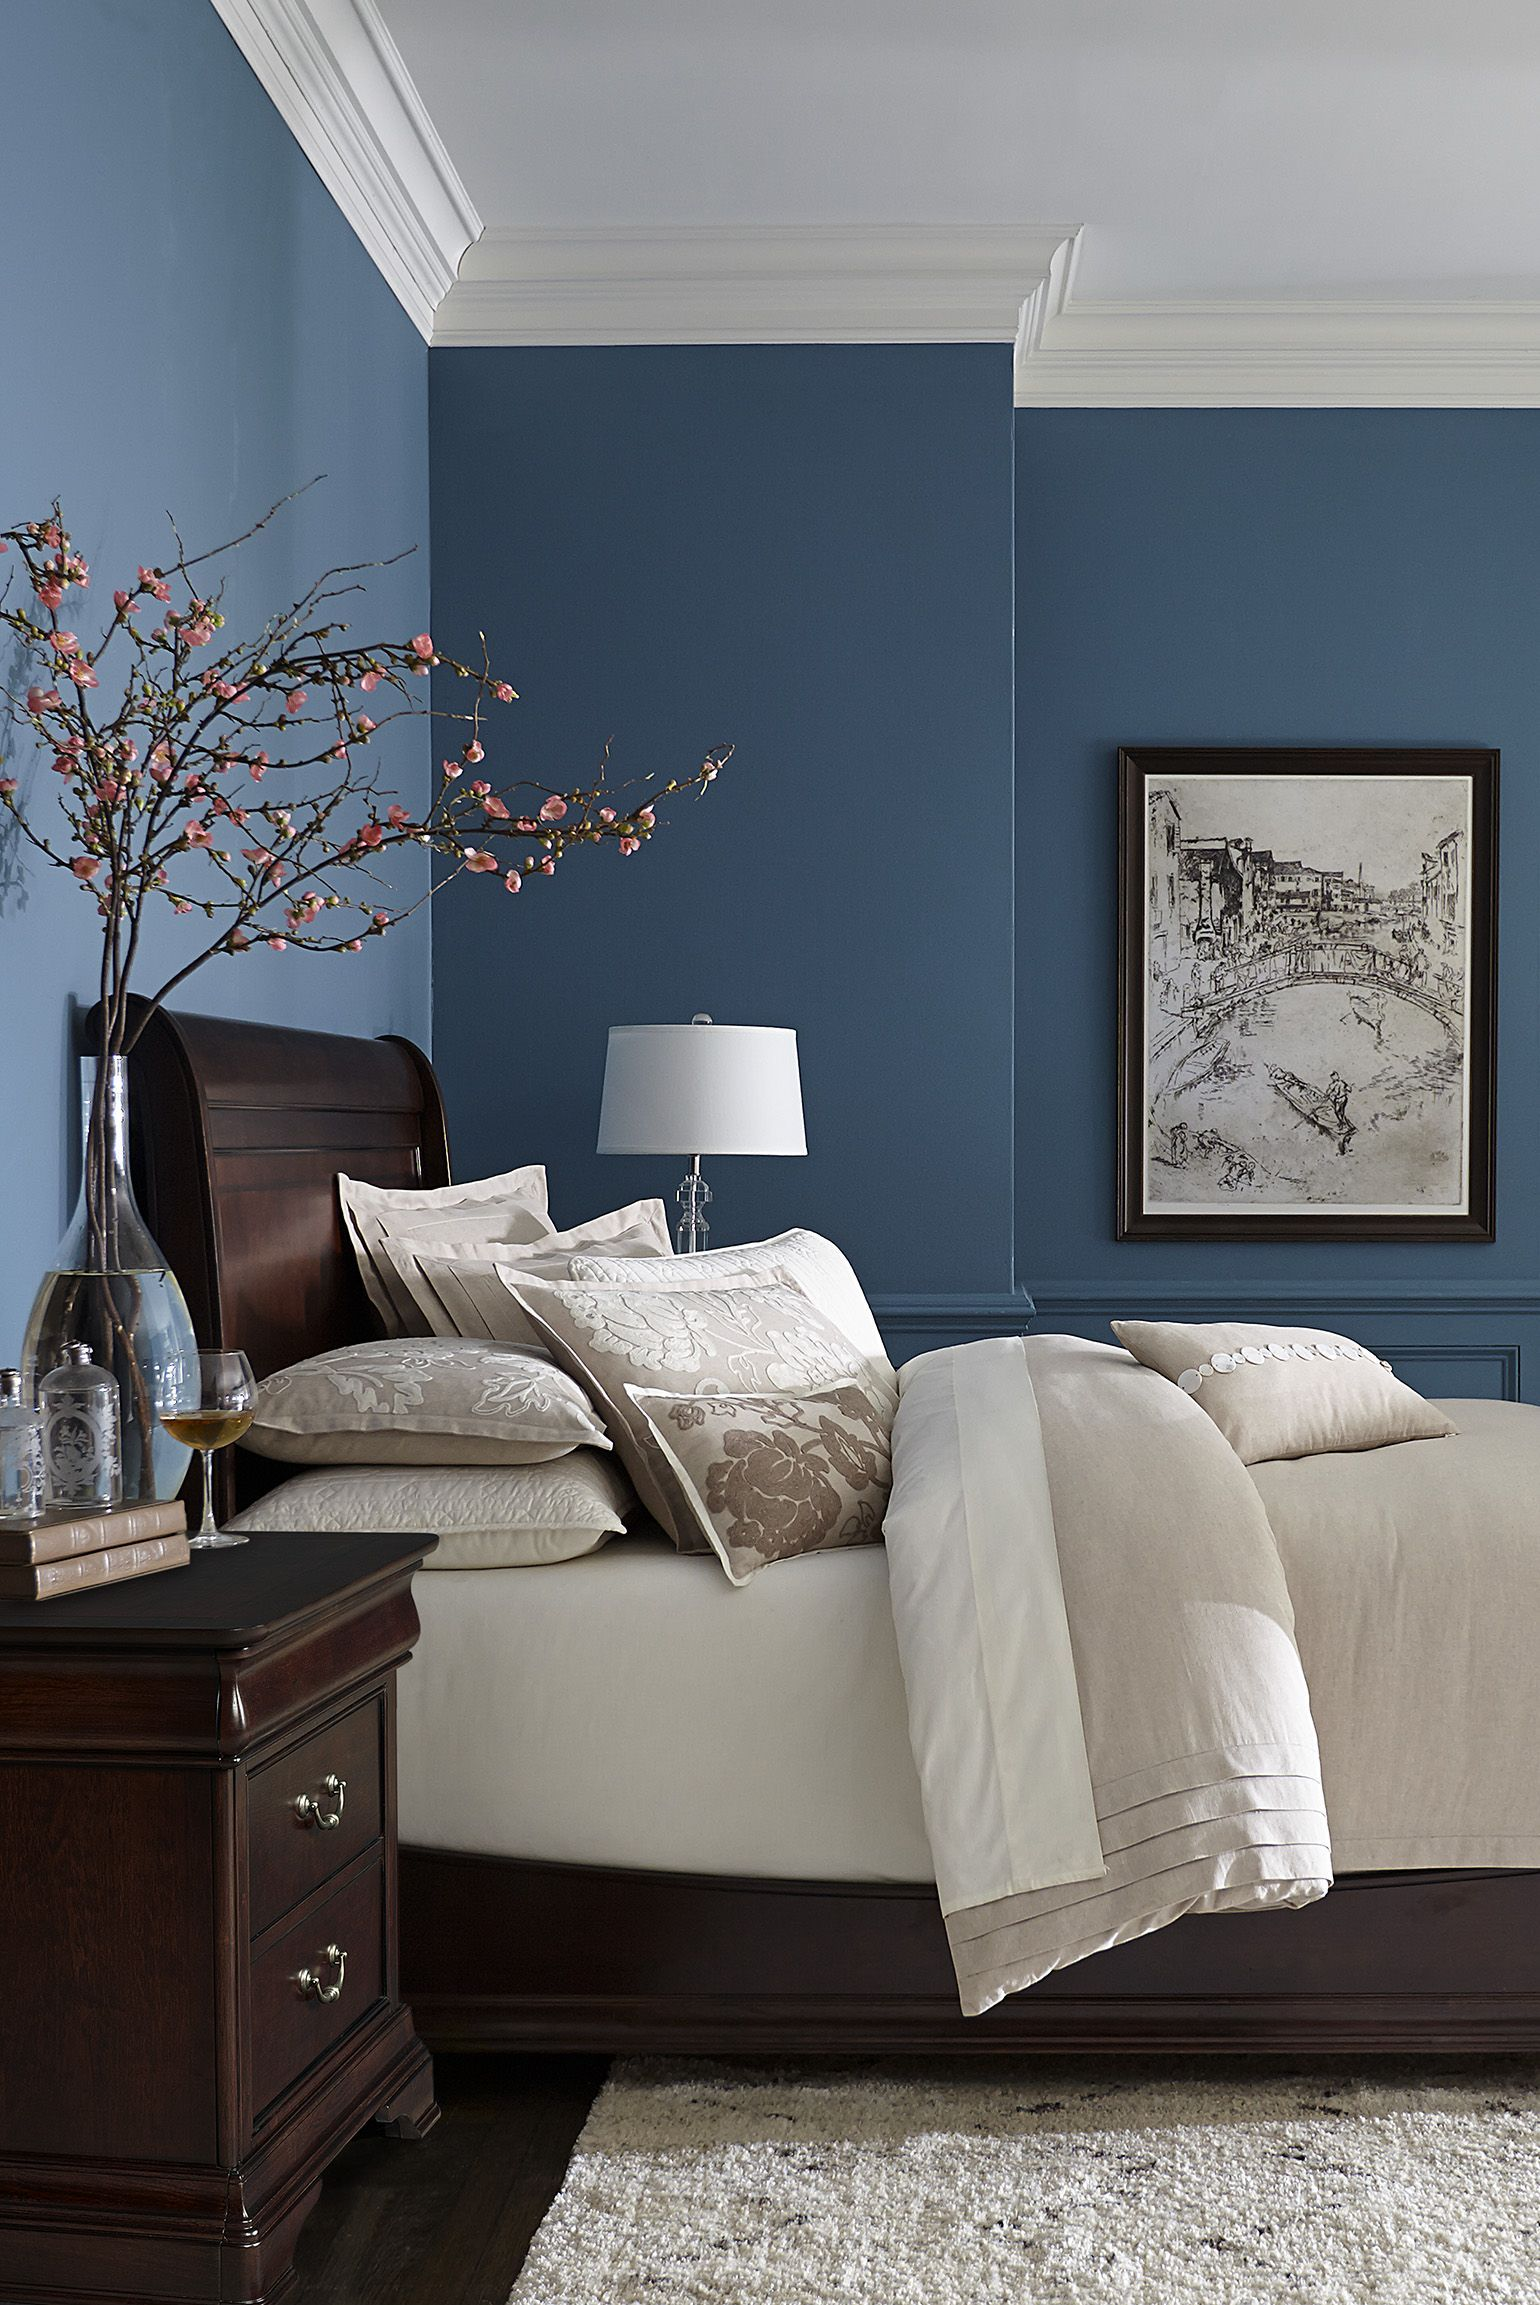 Bedroom Wall Colors Made With Hardwood Solids With Cherry Veneers And Walnut Inlays Our Orleans Be Blue Bedroom Walls Bedroom Wall Colors Best Bedroom Colors